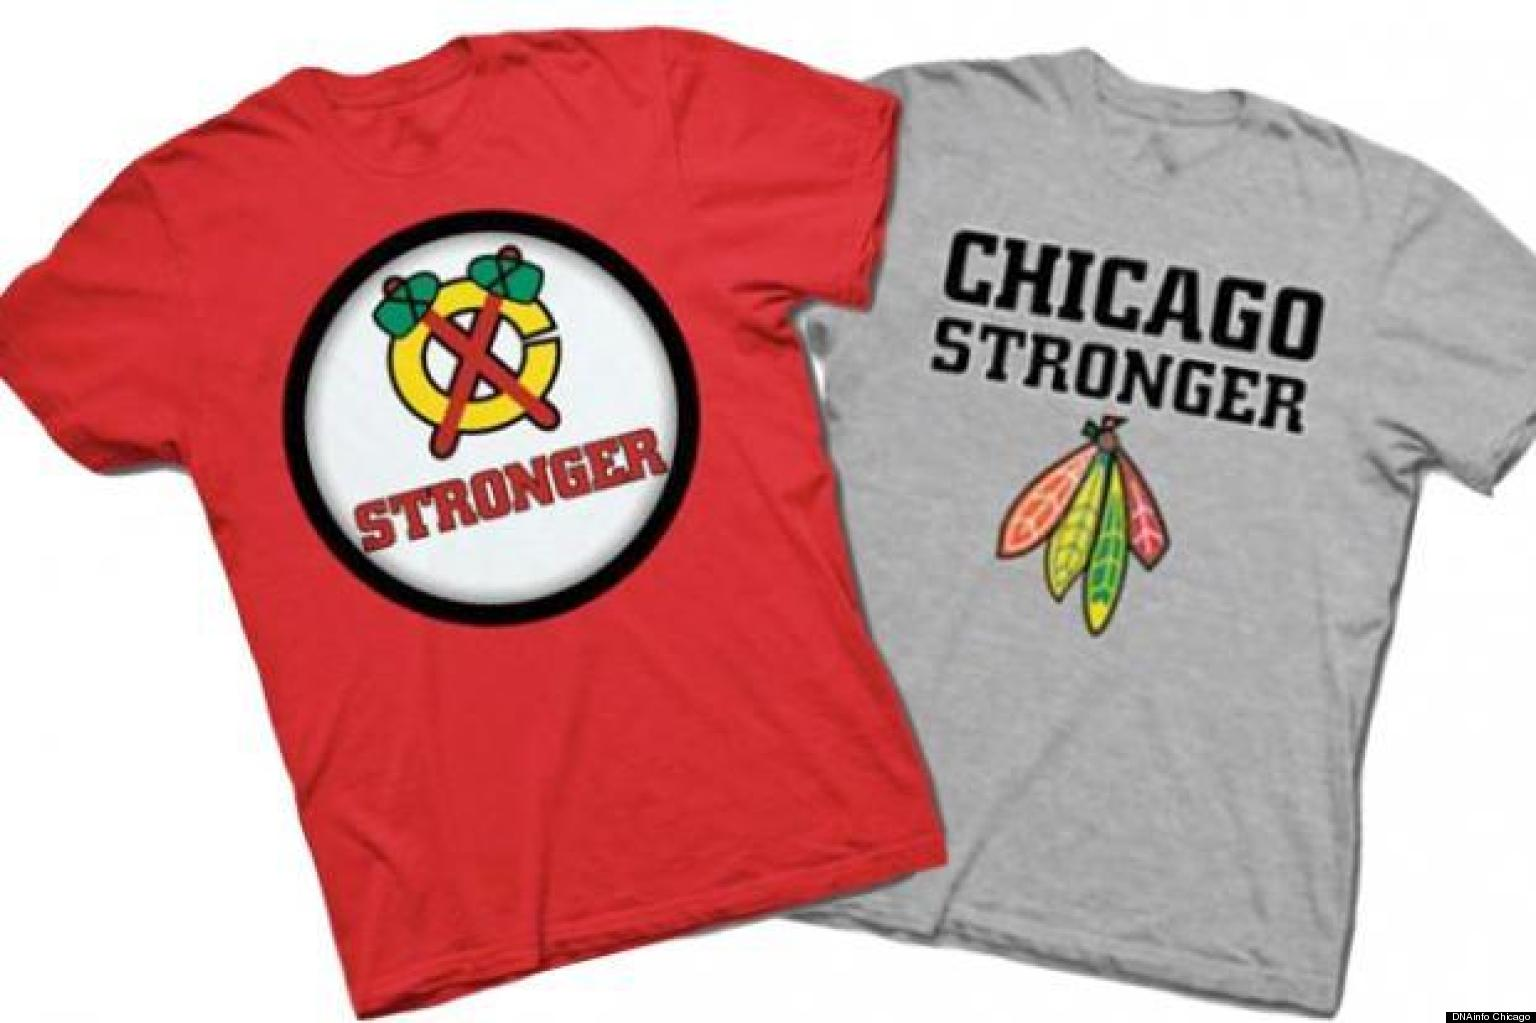 39 chicago stronger 39 t shirt company pulls shirt after